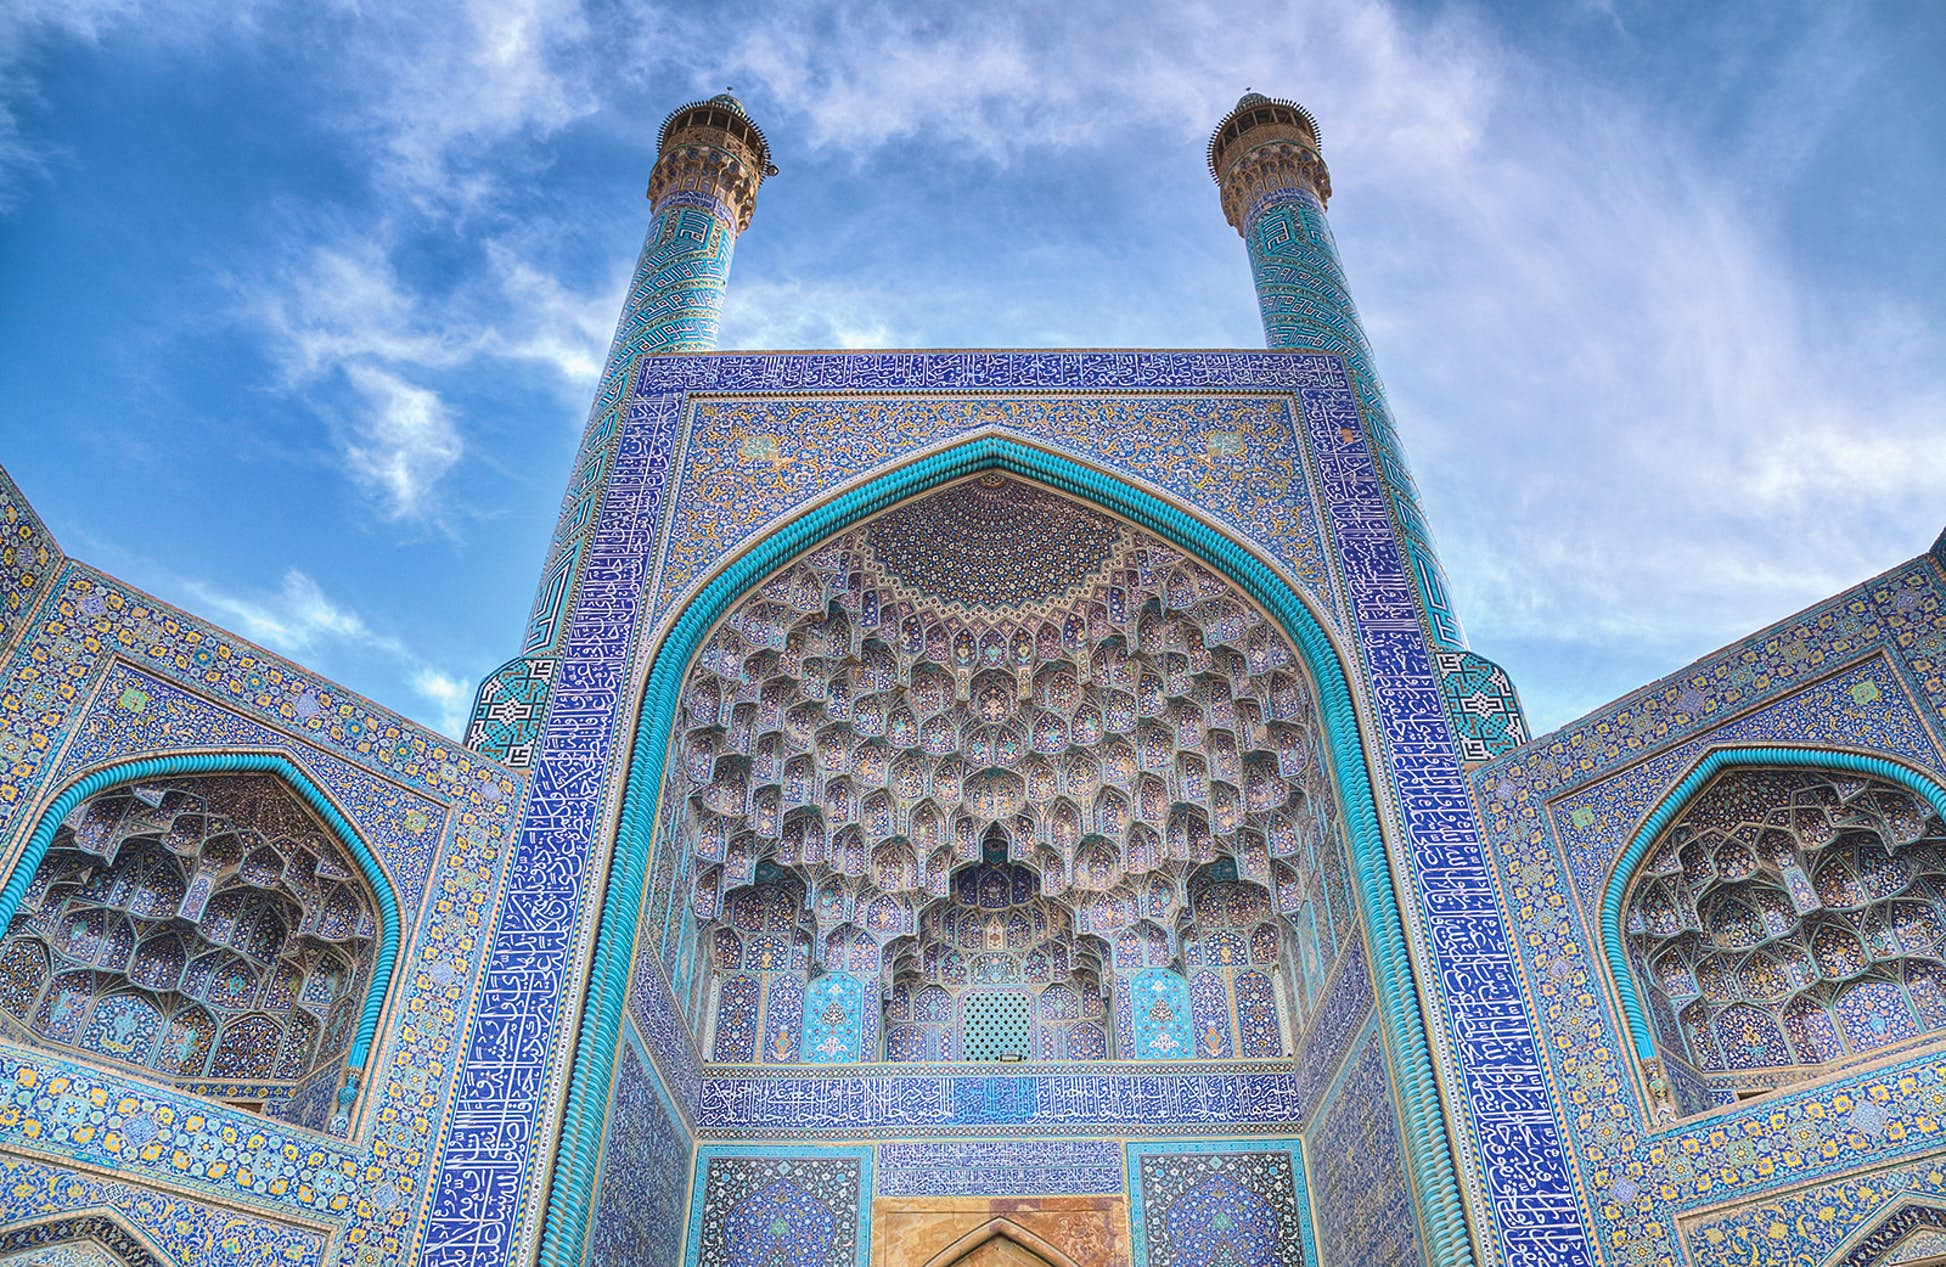 Iran has many fine examples of Islamic architecture, but the Shah Mosque, or Masjed-e-Shah, might just top them all © Ravi Tahilramani / Getty Images